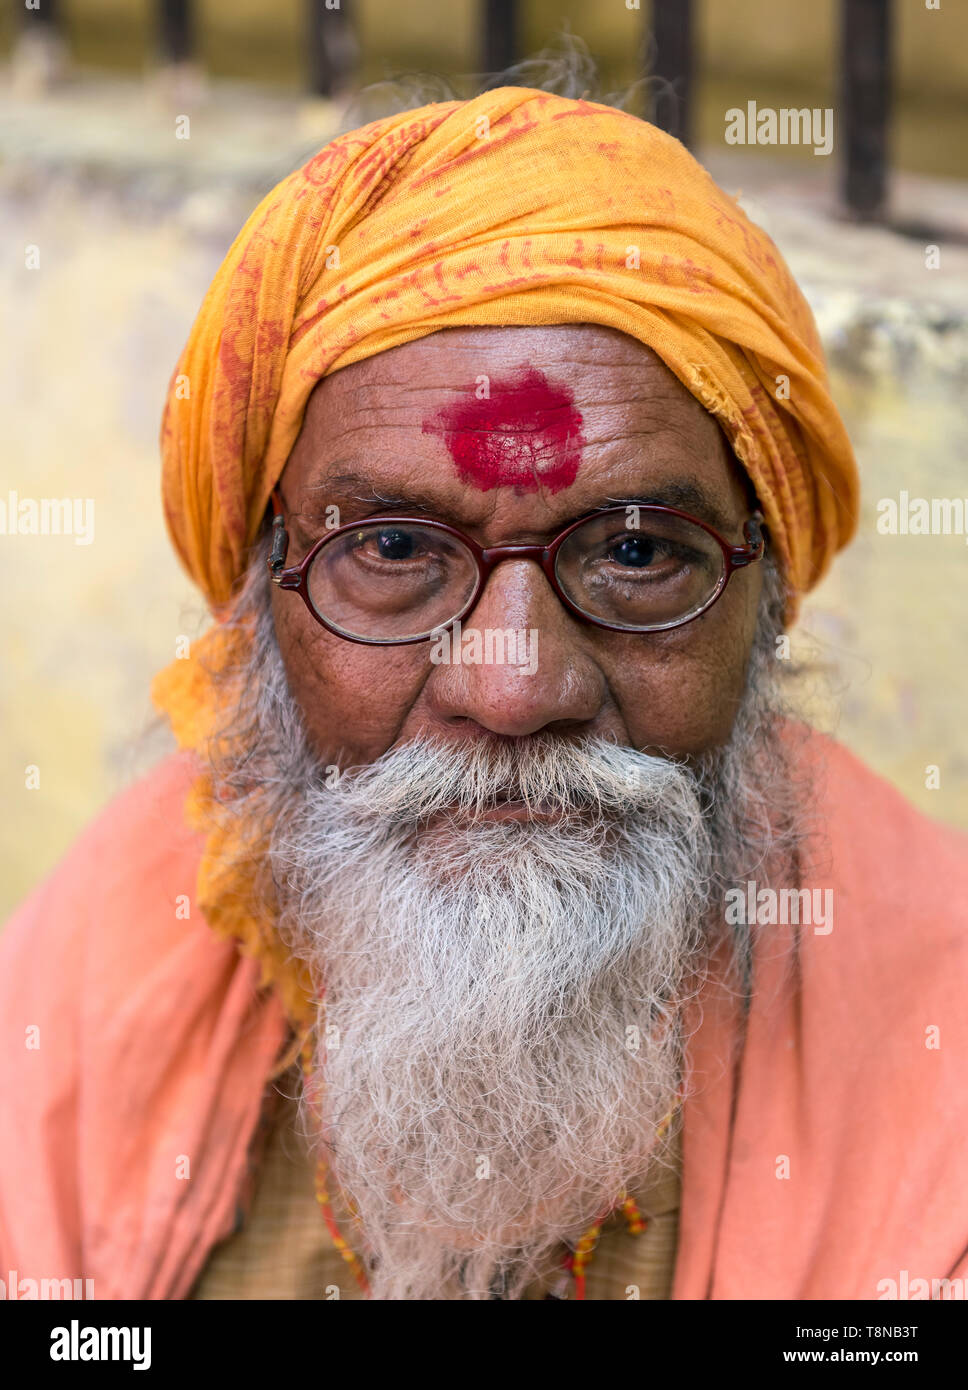 Portrait of an Indian man, Old City of Varanasi, India - Stock Image